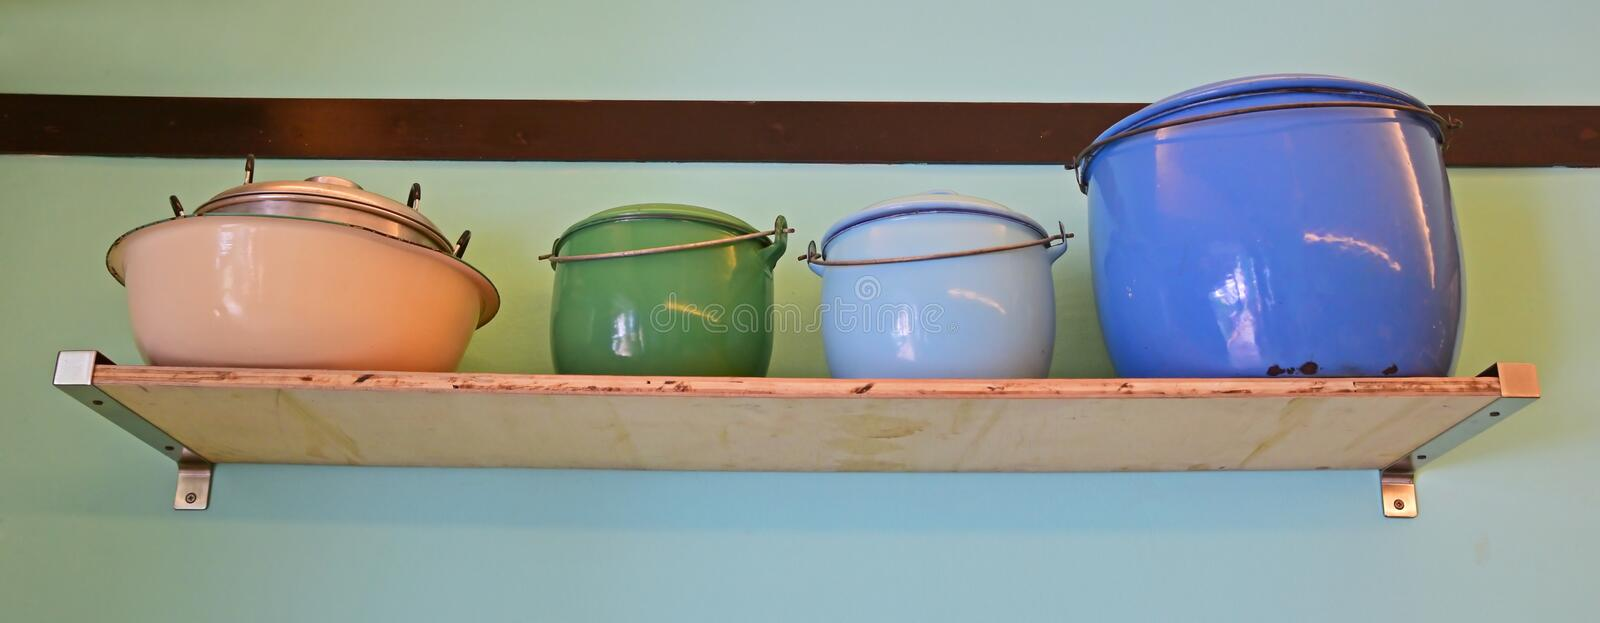 Colourful nieociosany cookware obrazy stock